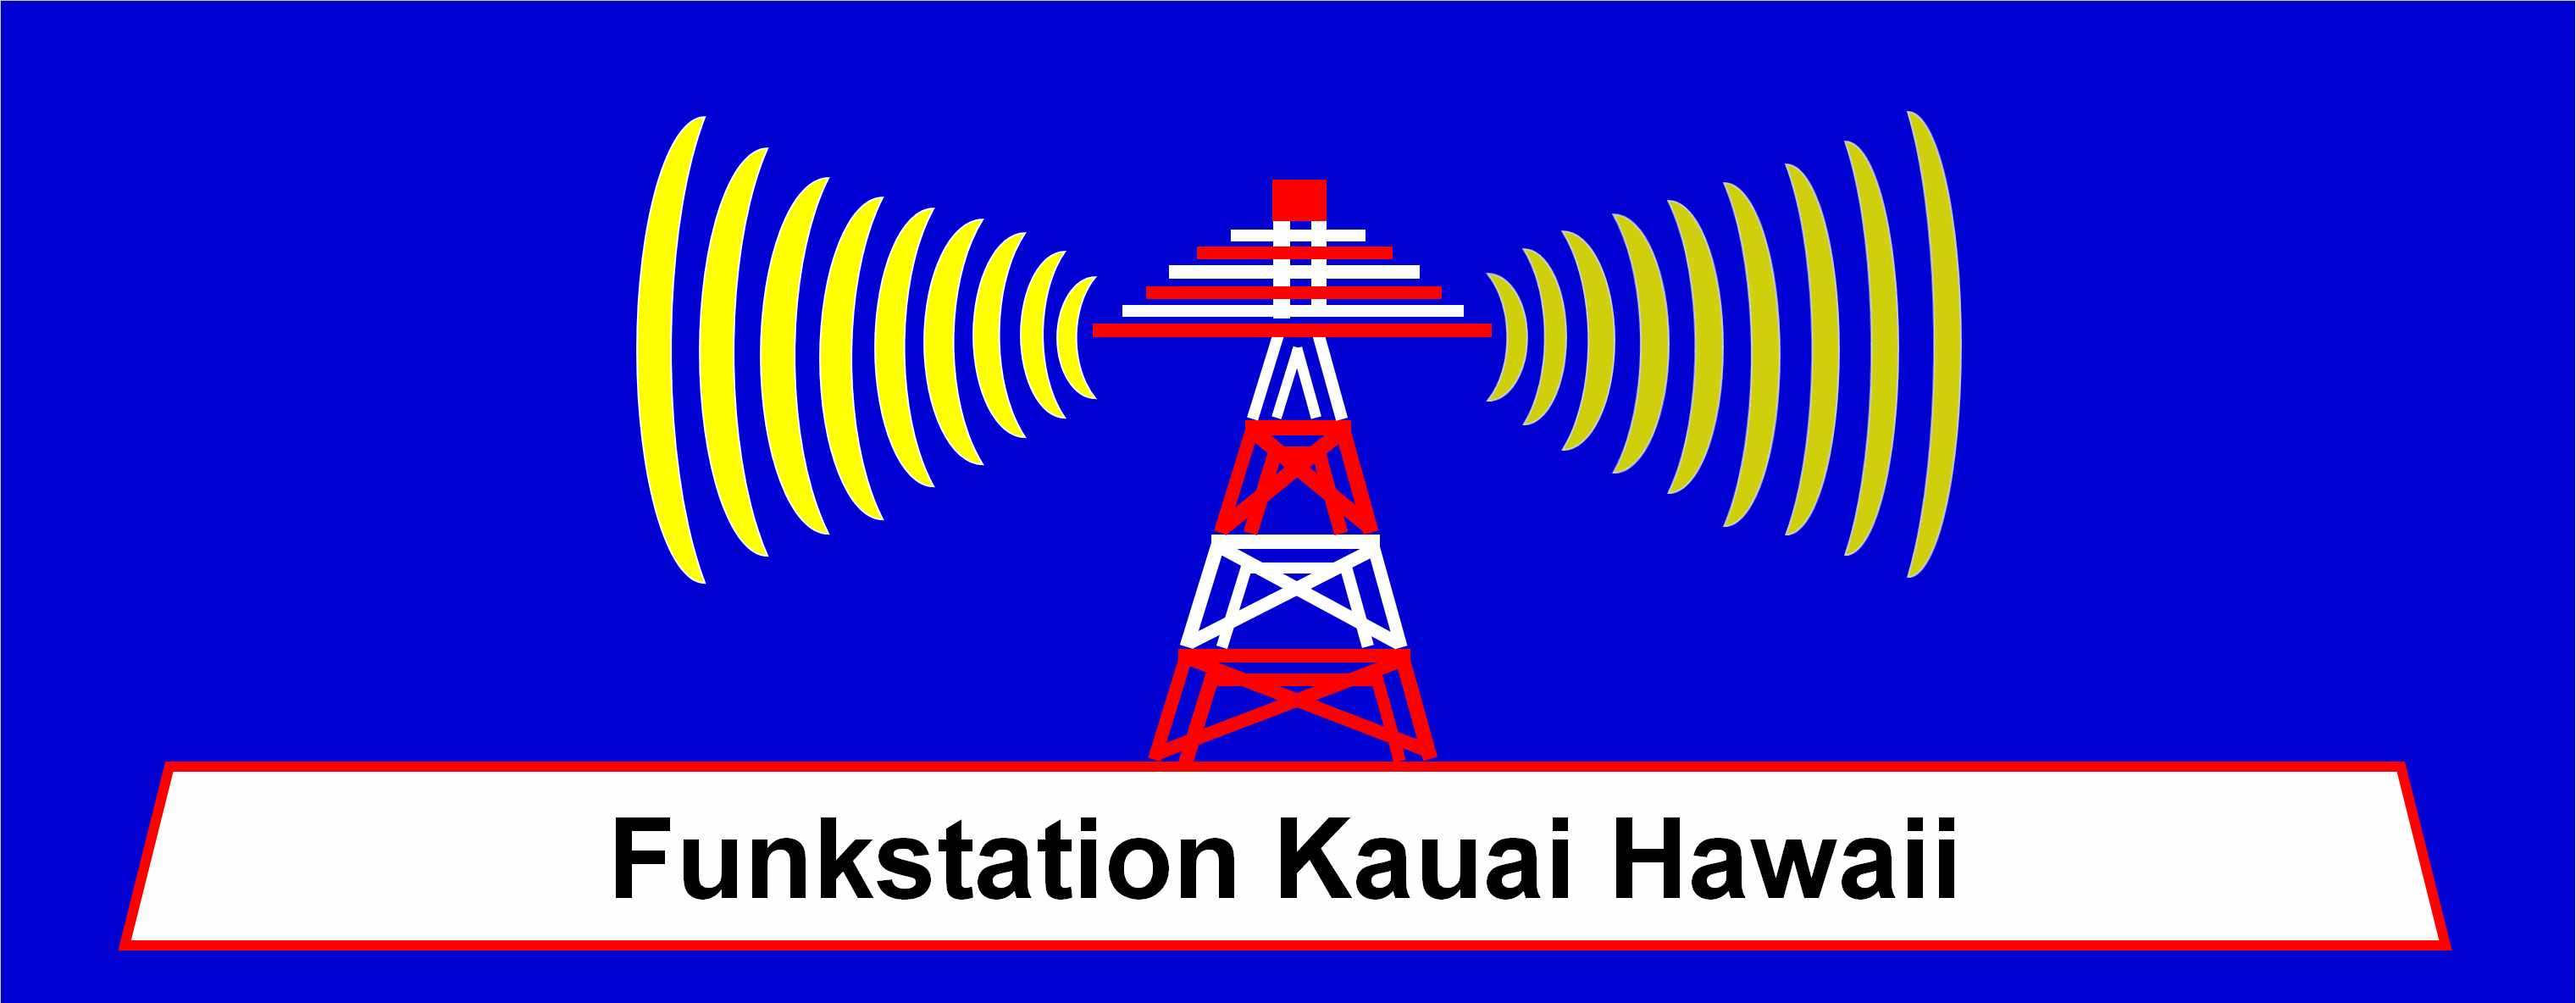 Funkstation Kauai Hawaii